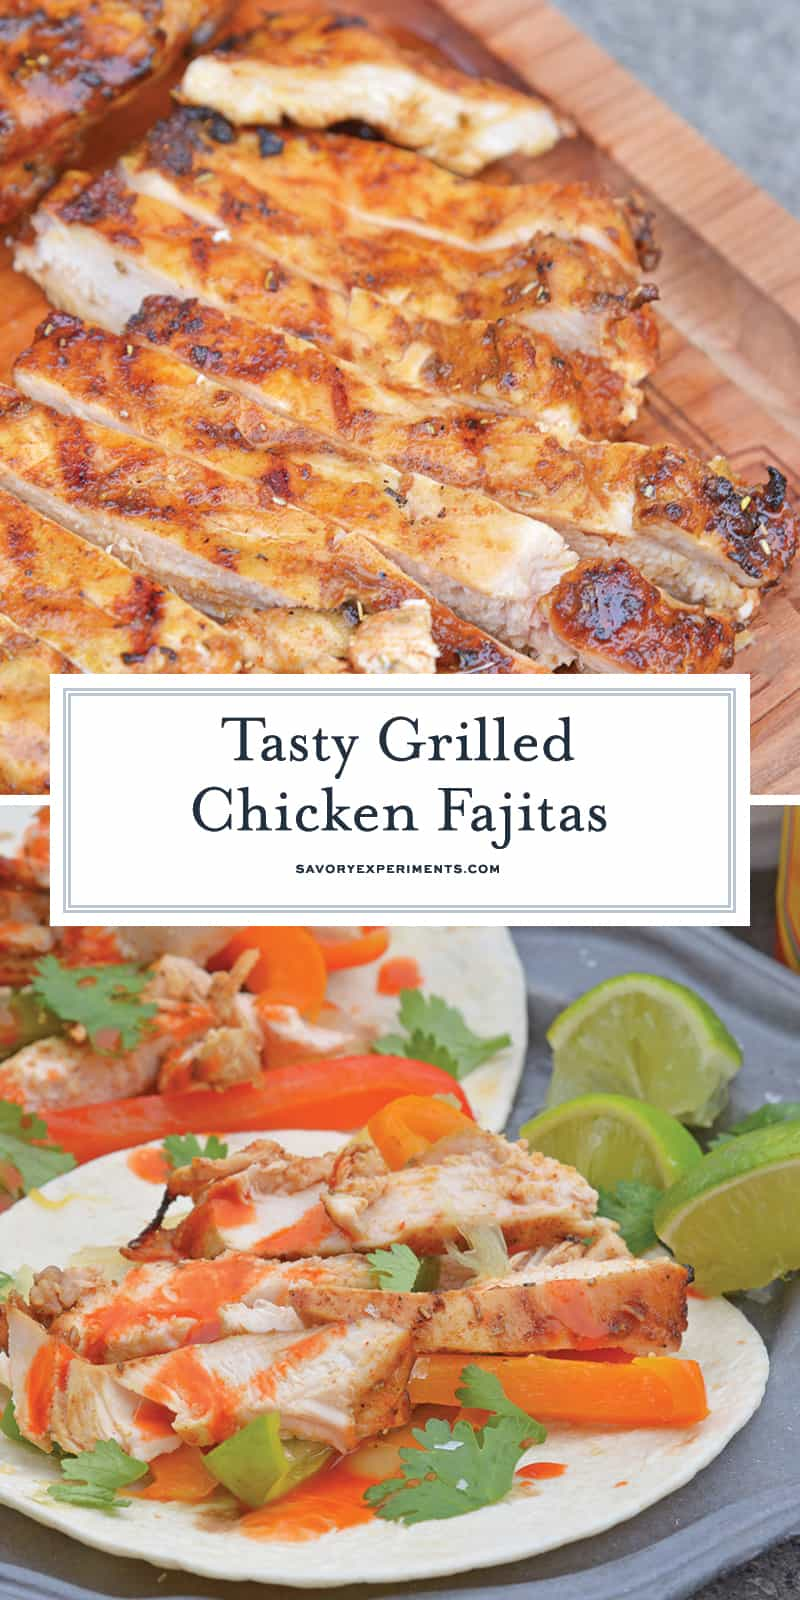 My Grilled Chicken Fajitas are a simple and healthy meal that you can have ready in under 30 minutes and make for the perfect weeknight meal.  #grilledchickenfajitas #fajitas #grilledchicken www.savoryexperiments.com